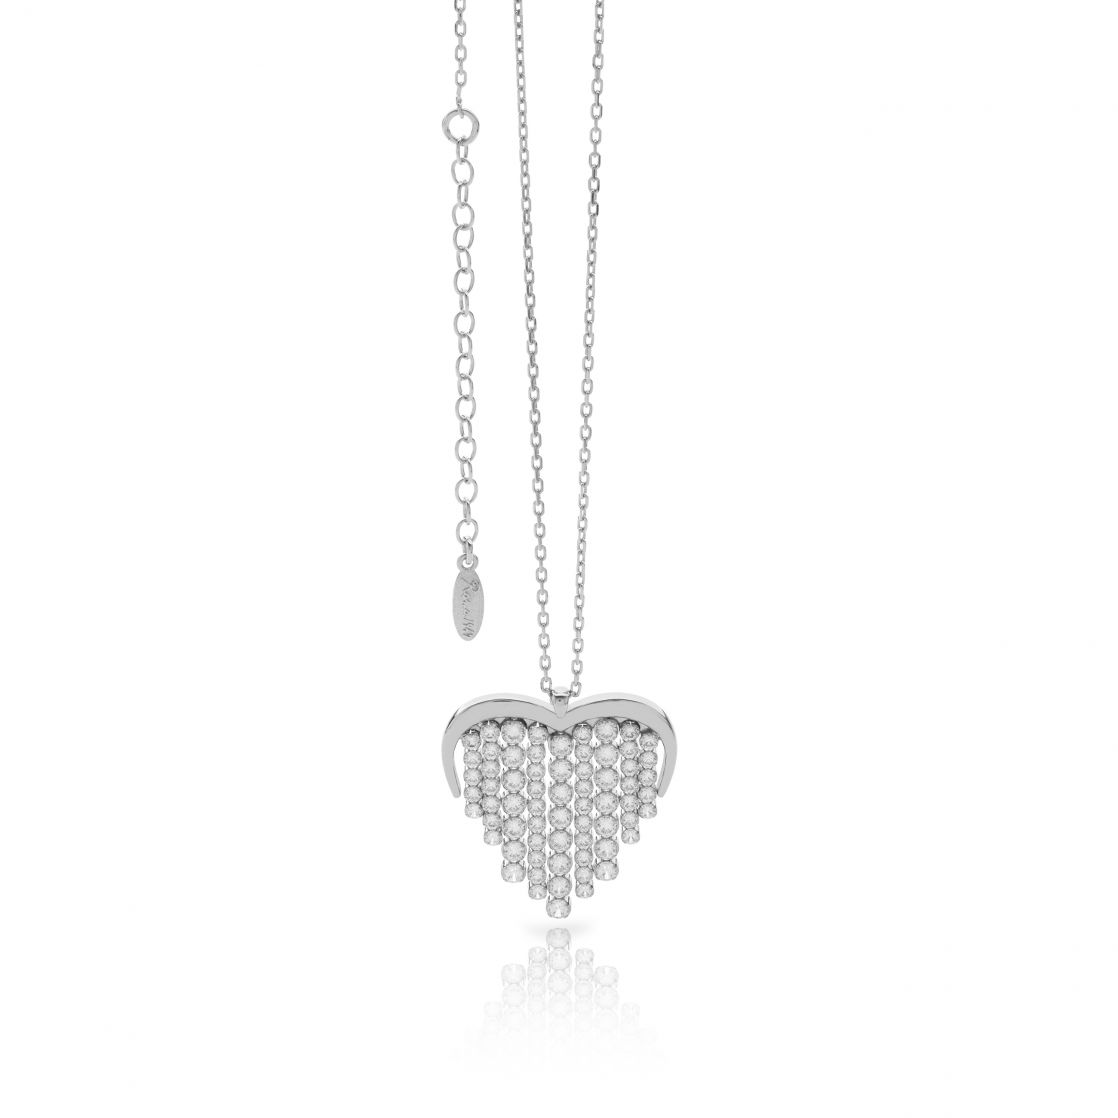 WATERFALL HEART NECKLACE